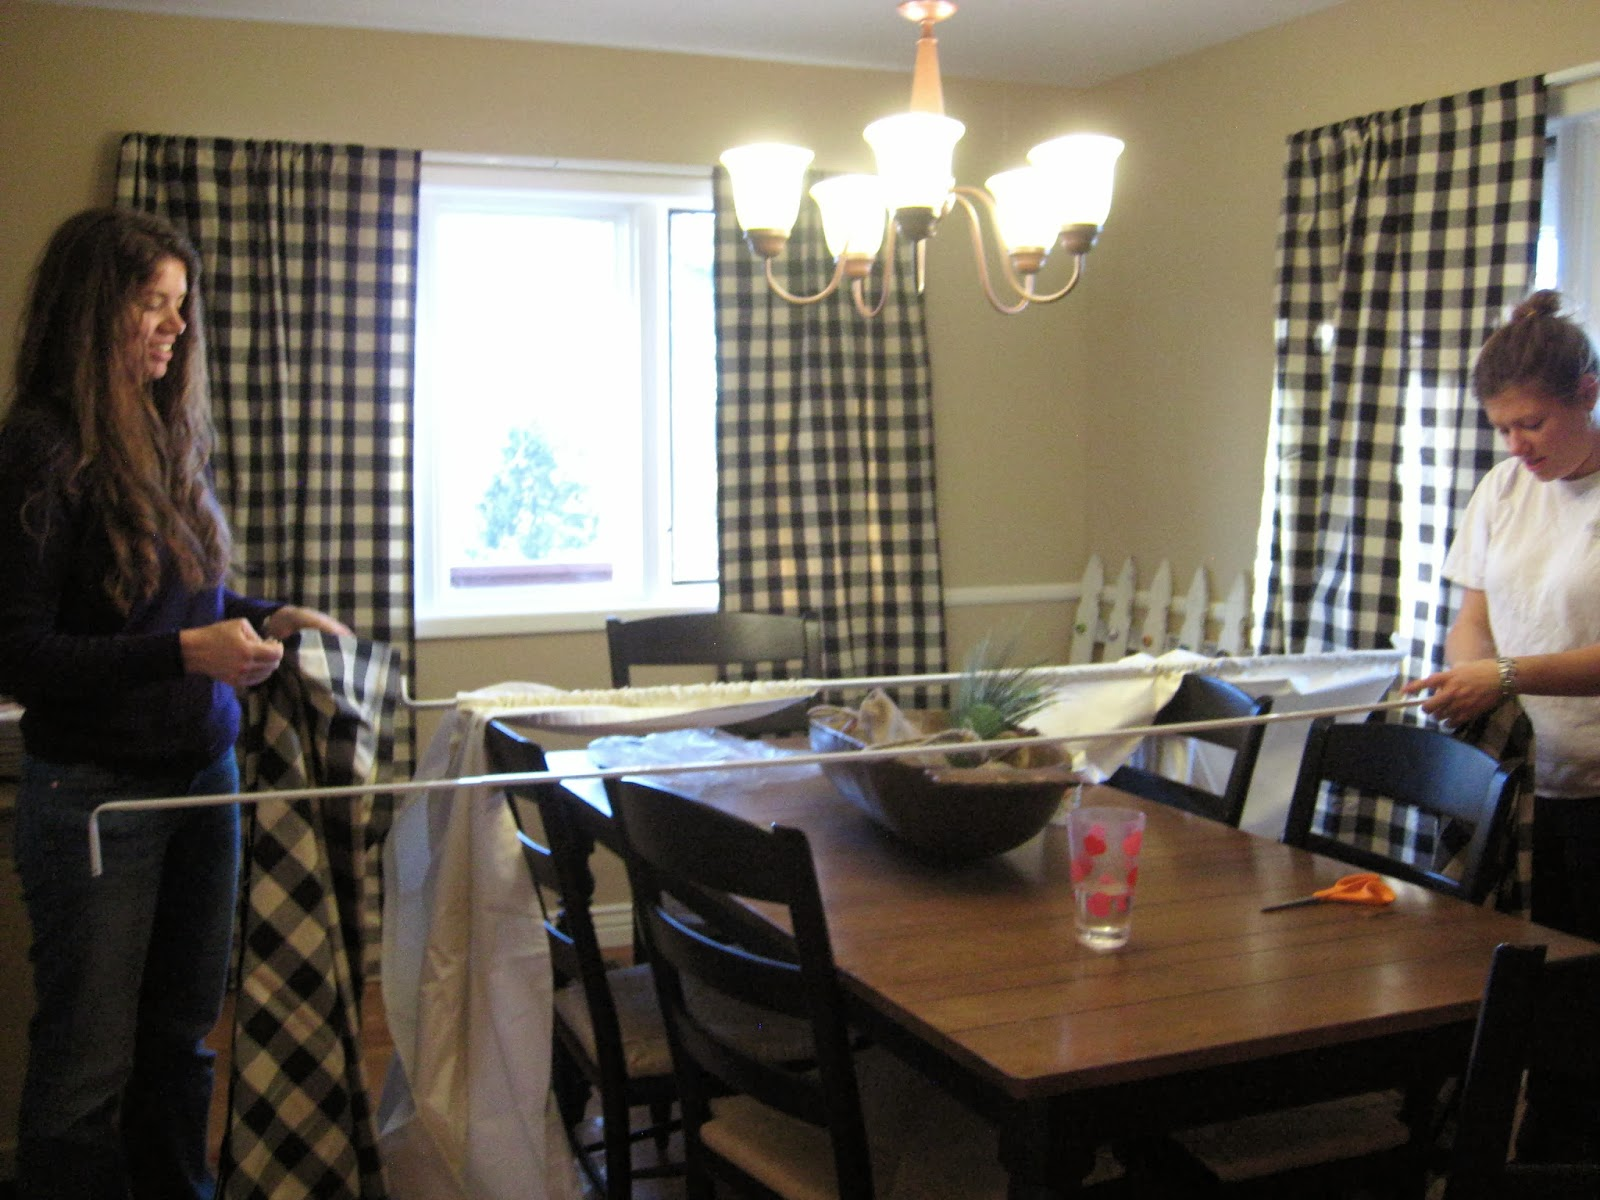 Black and white checked curtains - April Helped Kelli Hang More Curtains I Love Black And White Buffalo Checked Curtains Another Smart Girl